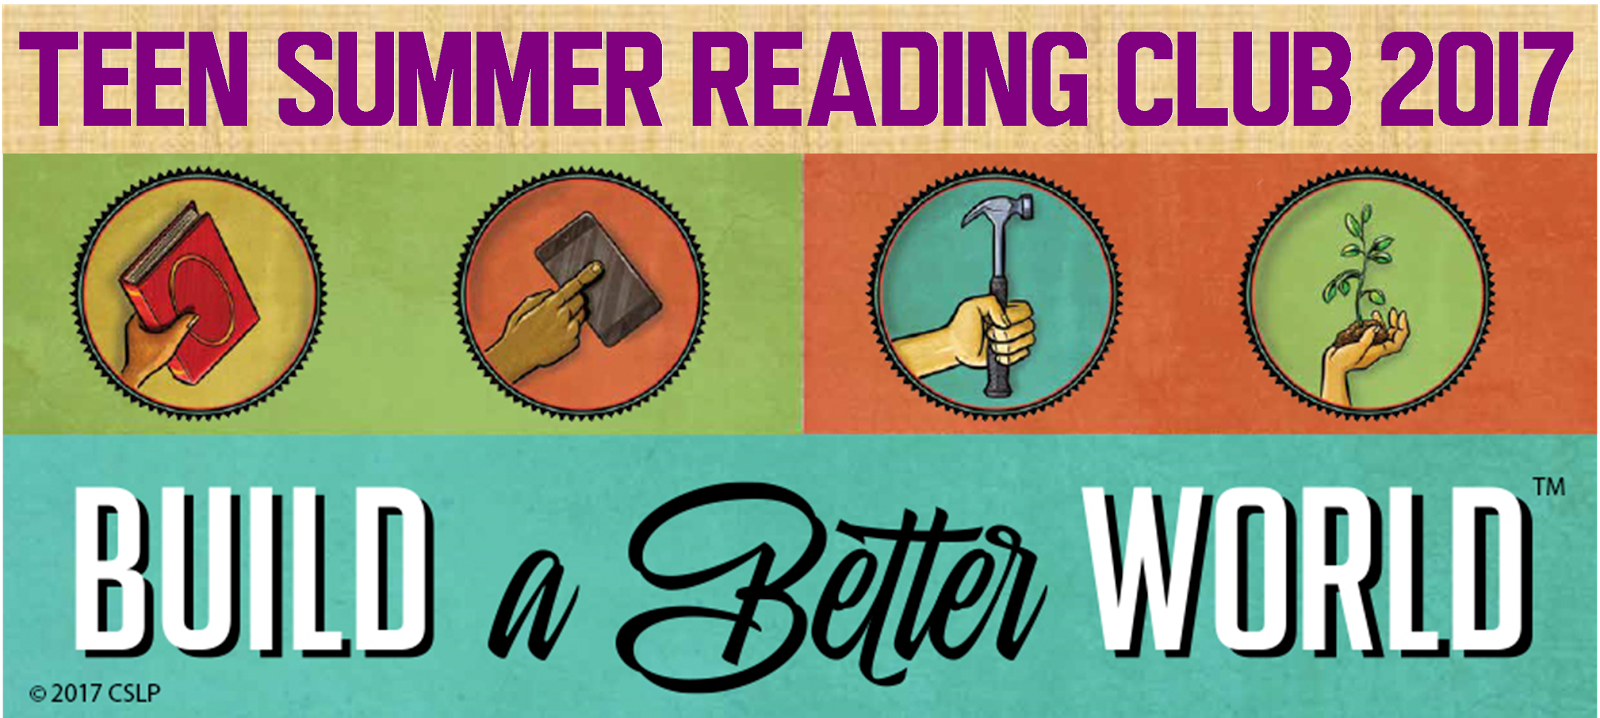 Teen Summer Reading Club 2017